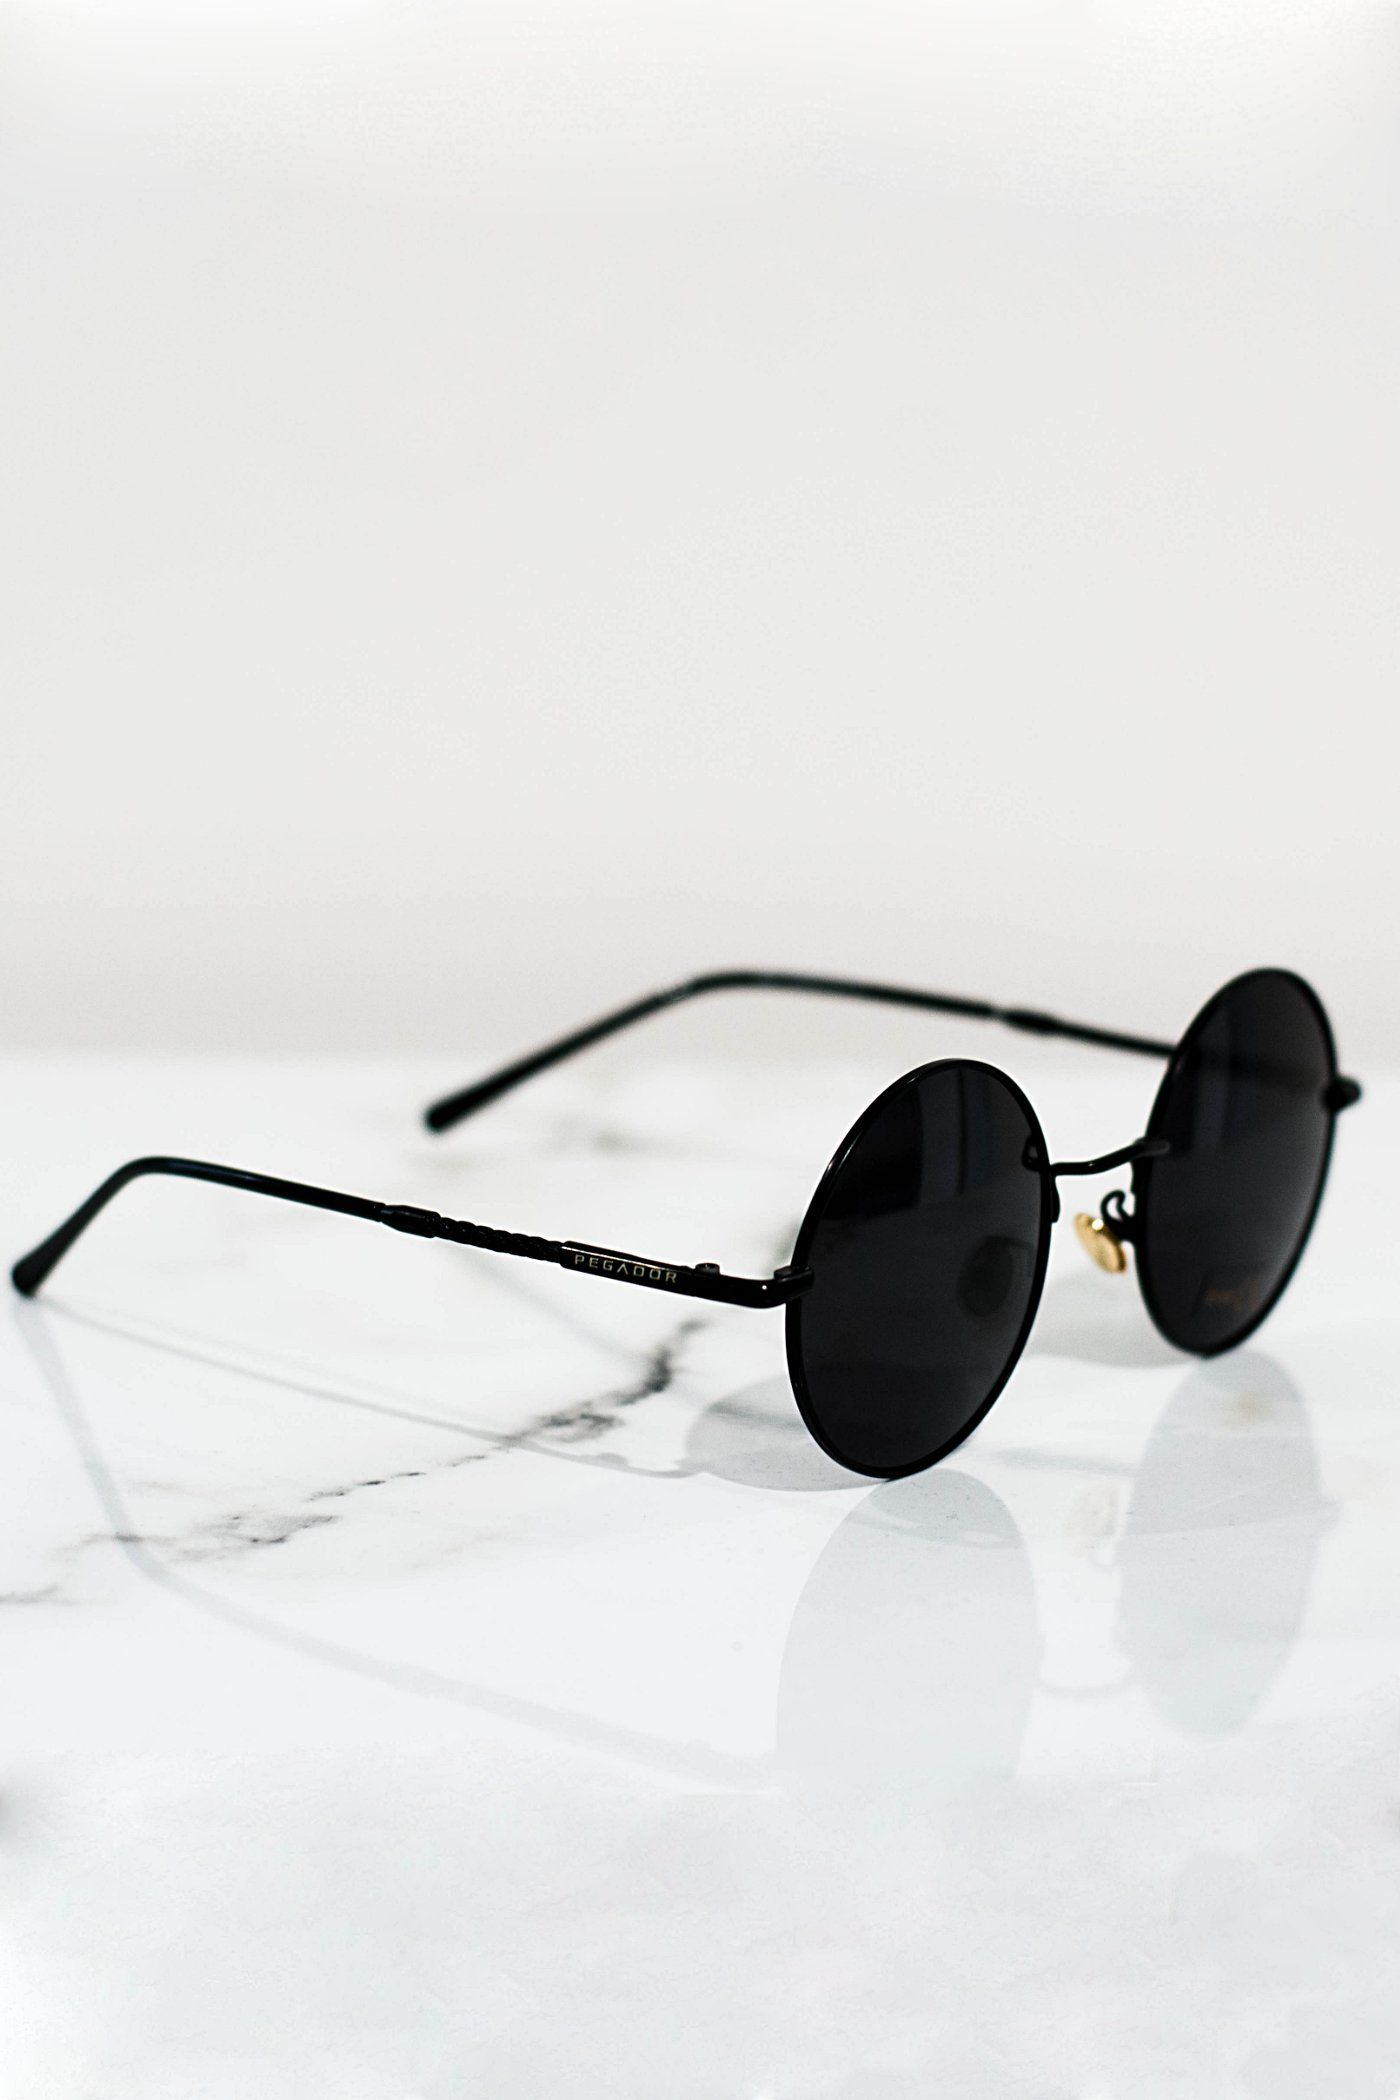 Round sunglasses black with dark lens